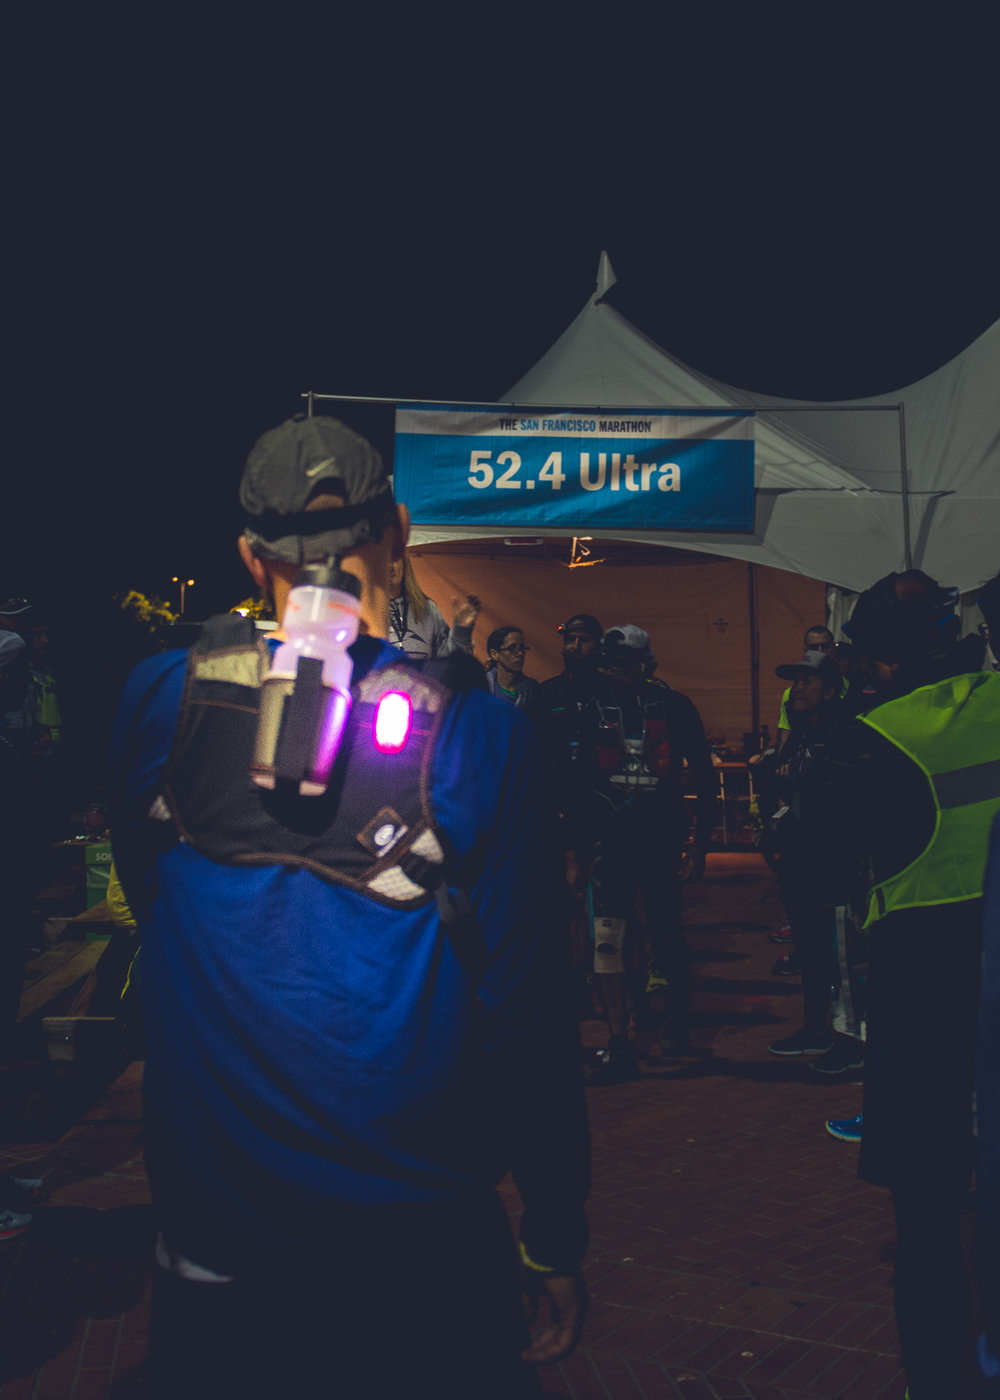 Checking in at midnight for the SF Ultramarathon!